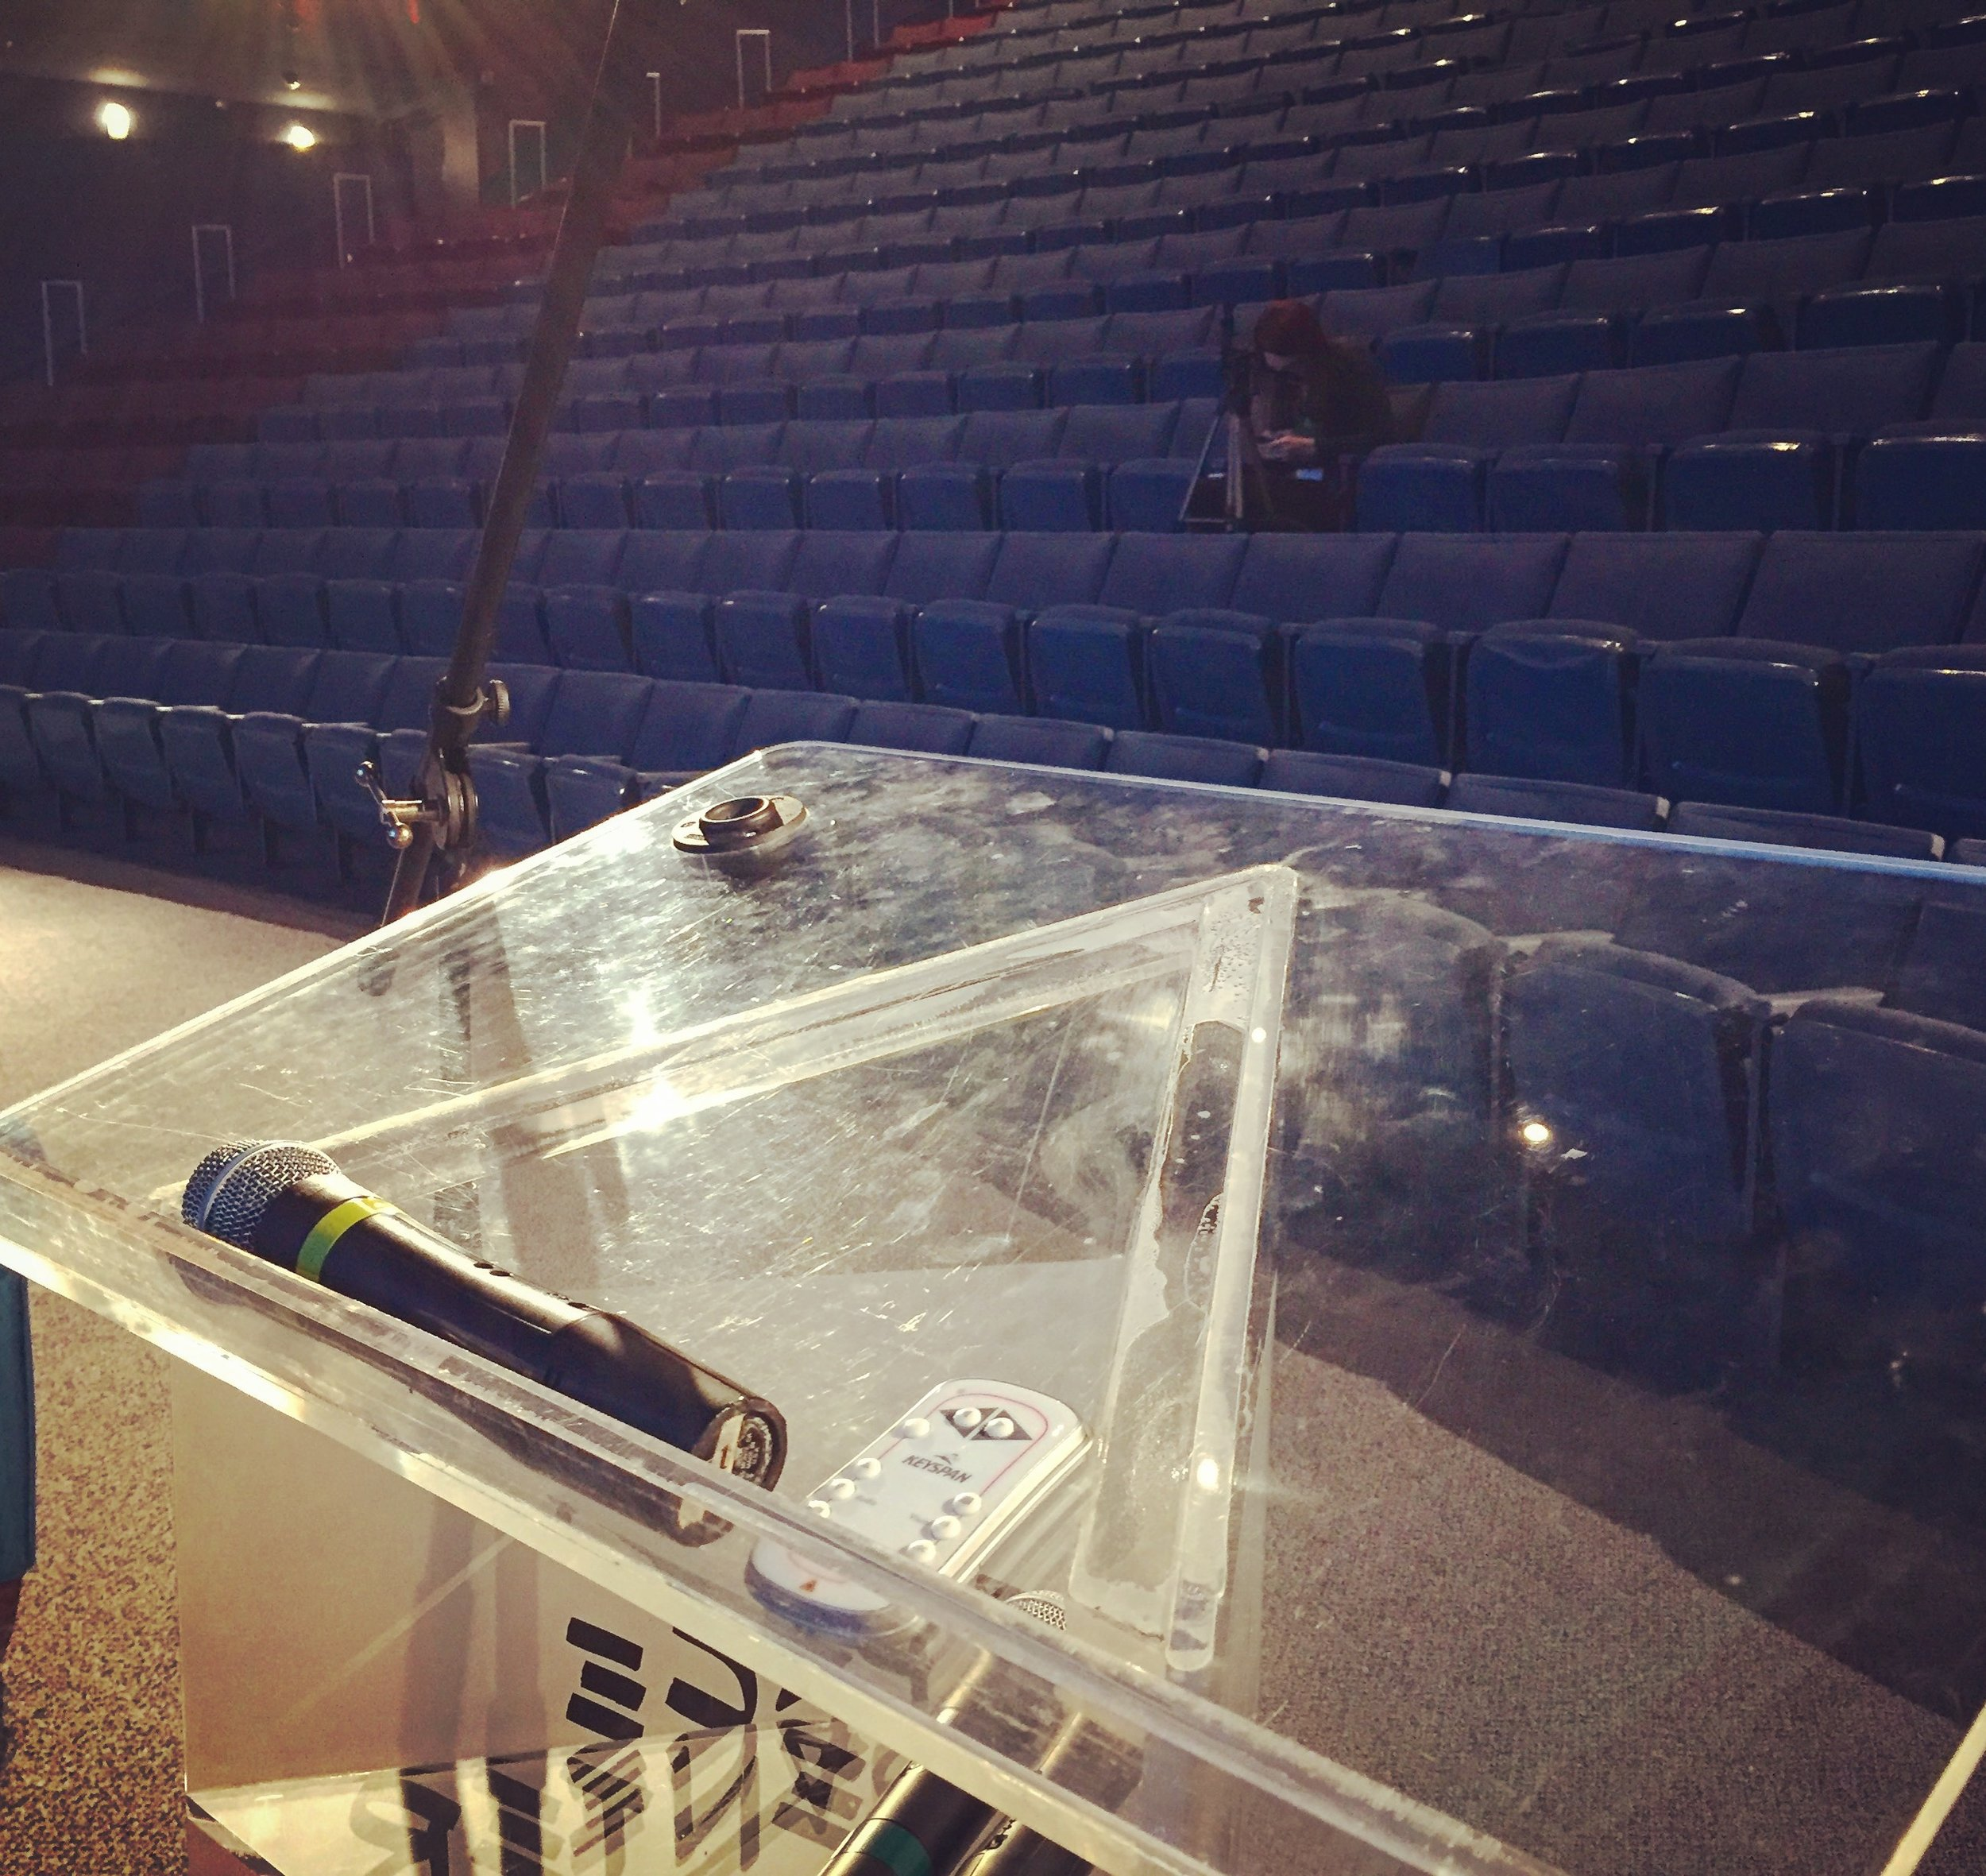 It's looks like a podium, but it's really a place where reality gets condensed and amplified by focusing a crowd's attention.